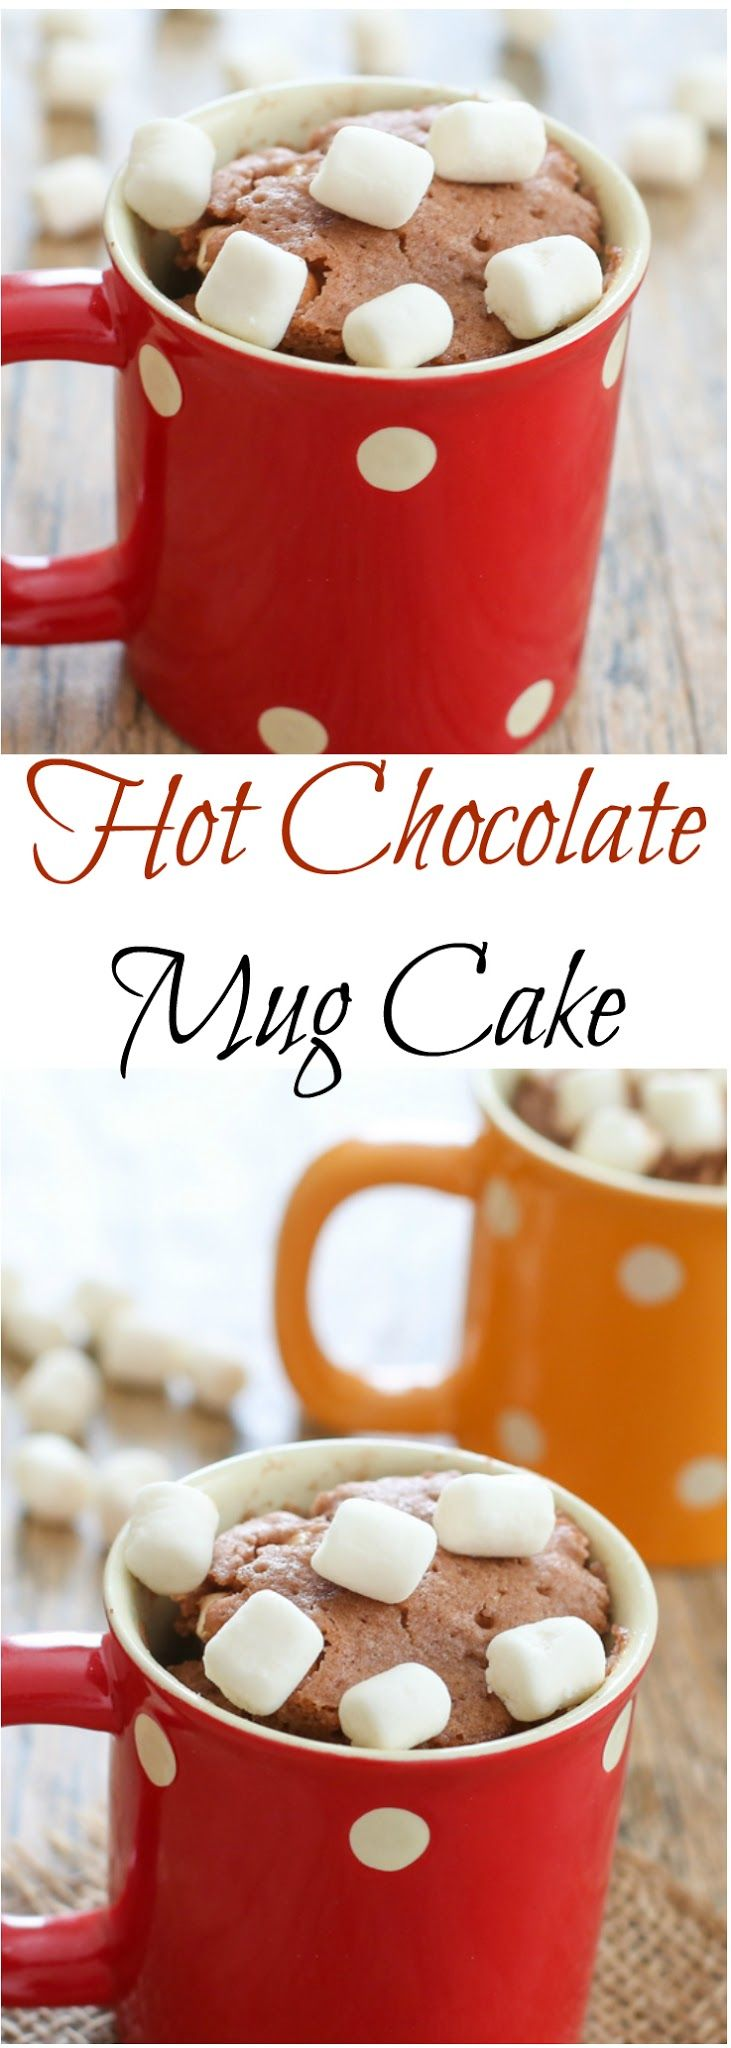 Hot Chocolate Mug Cake. Ready in 5 minutes!